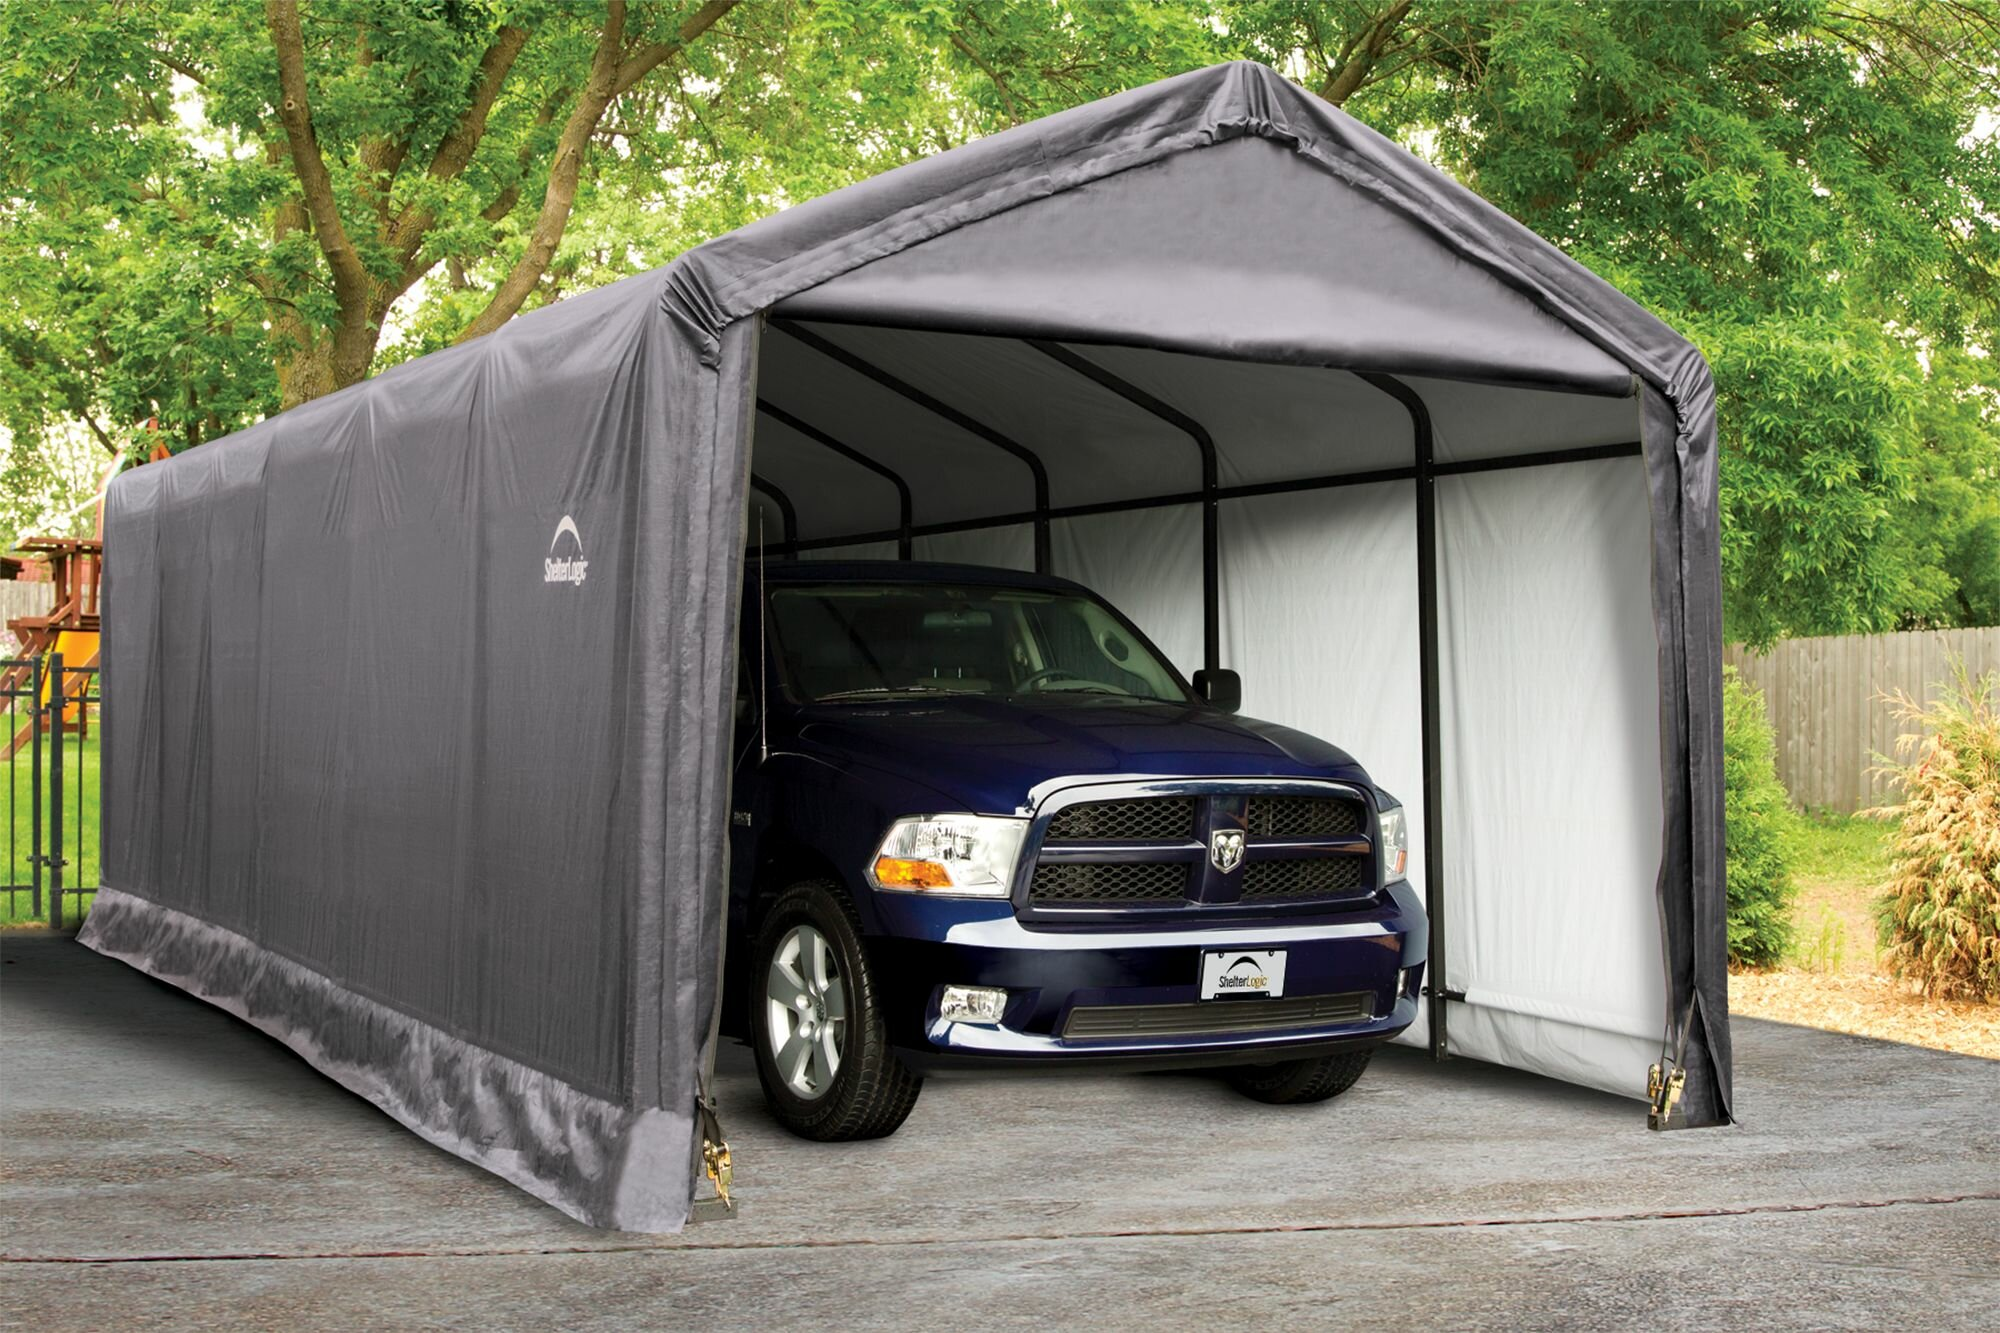 canopy using have shade shelter replacement shelterlogic menards portable ap in supply temporary idea best for a cover max garage tractor sun box tents outdoor